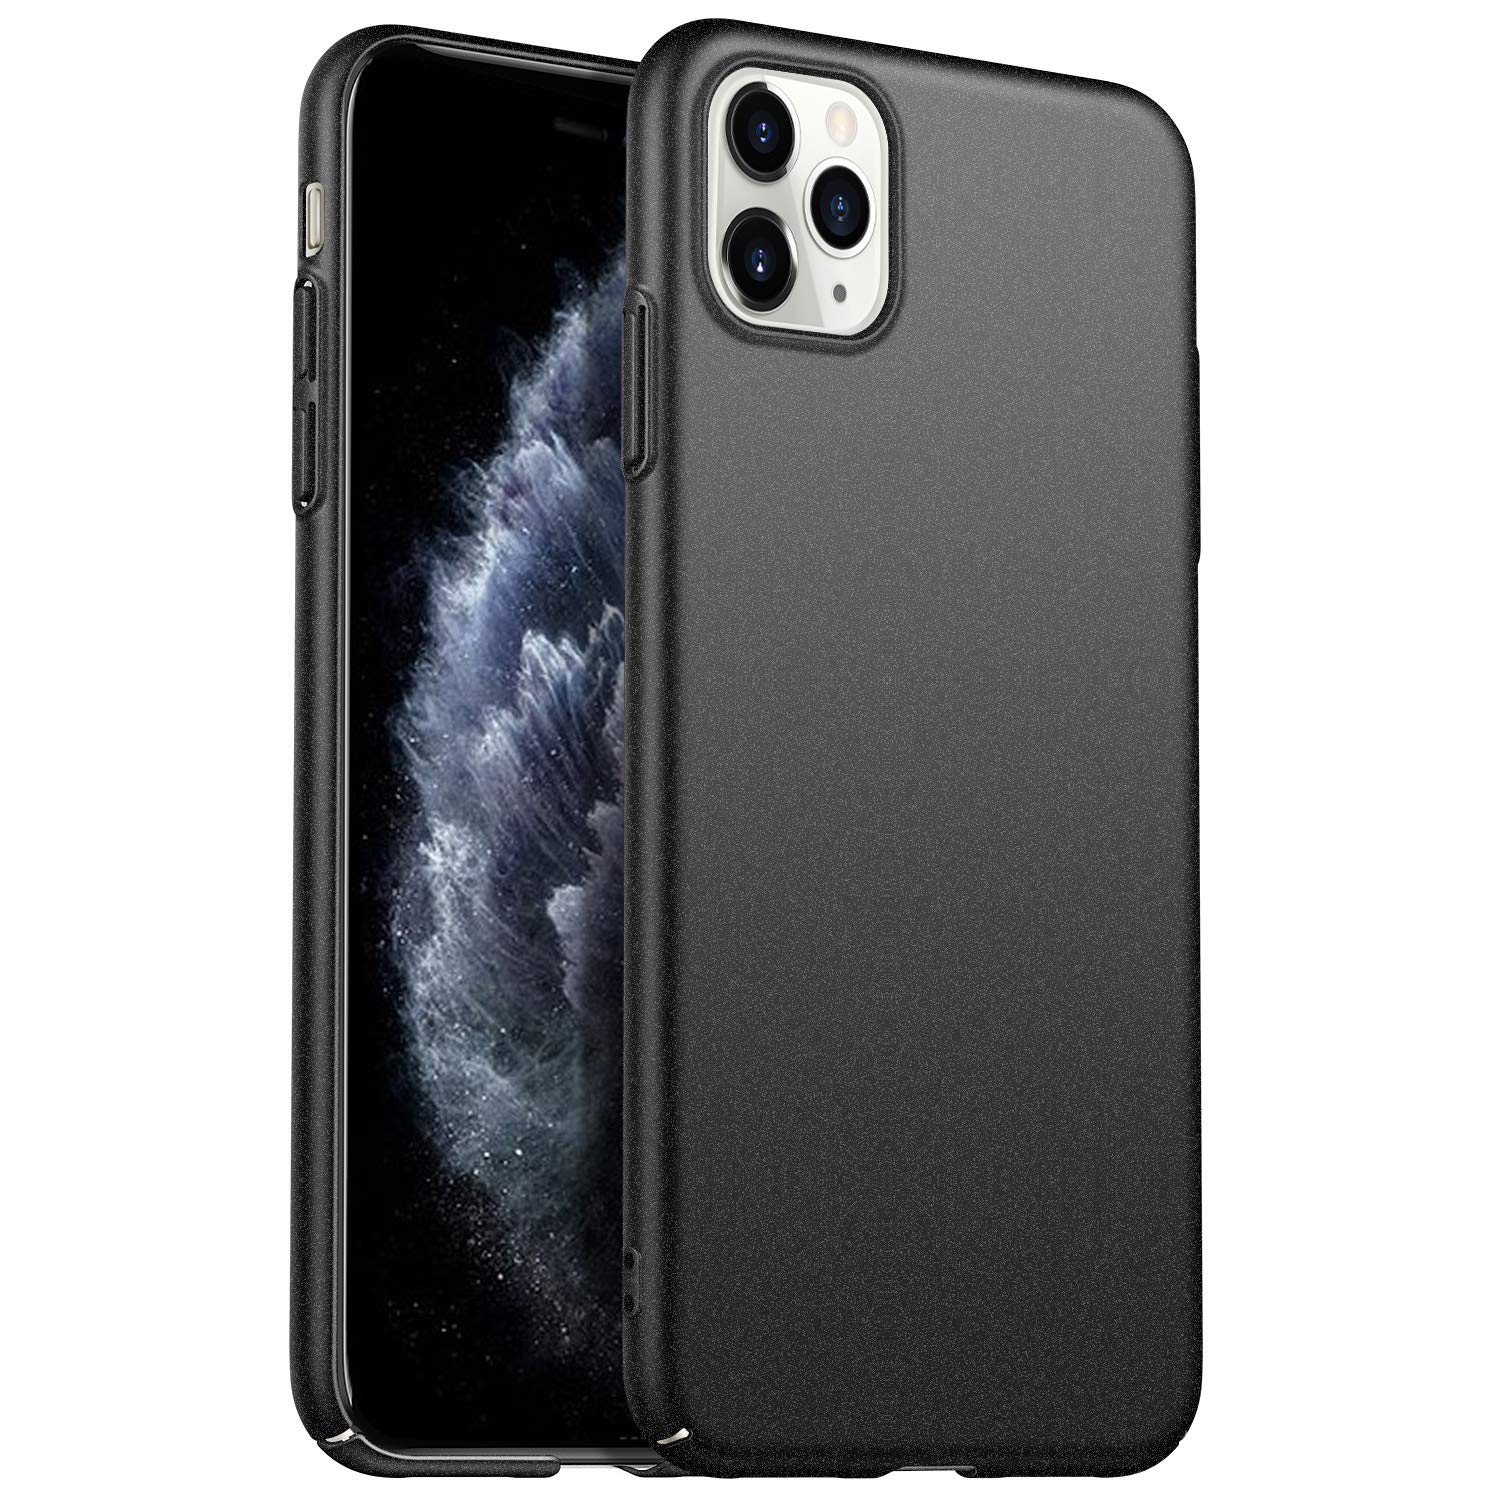 Kqimi Case for iPhone 11 Pro Max [Ultra-Thin] Hard Plastic PC Premium Material Full Protection Cover for iPhone 11 Pro Max 6.5 inch (Gravel Black)